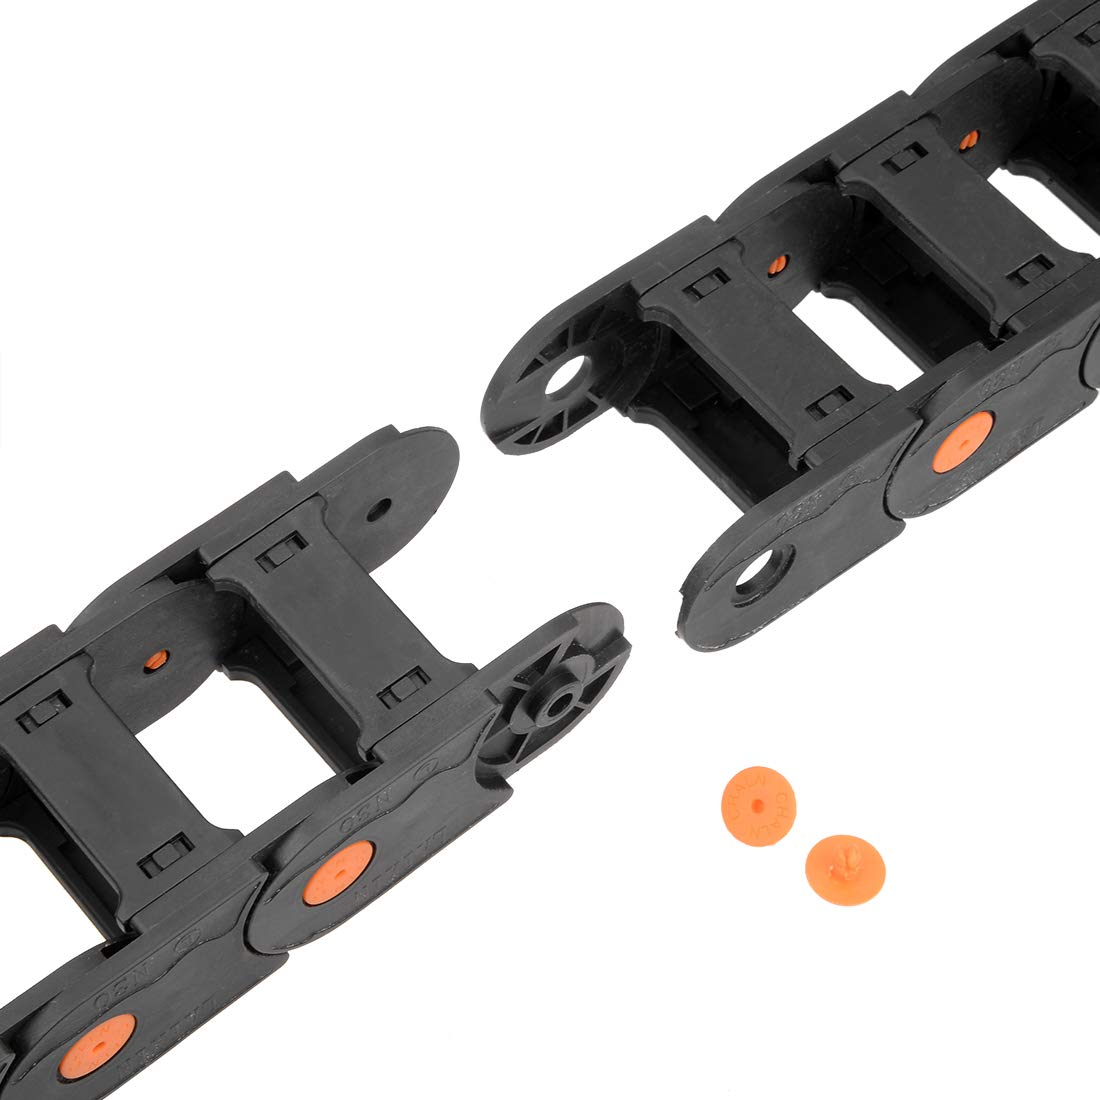 uxcell Drag Chain Cable Carrier Closed Type with End Connectors R100 35X50mm 1 Meter Plastic for Electrical CNC Router Machines Black